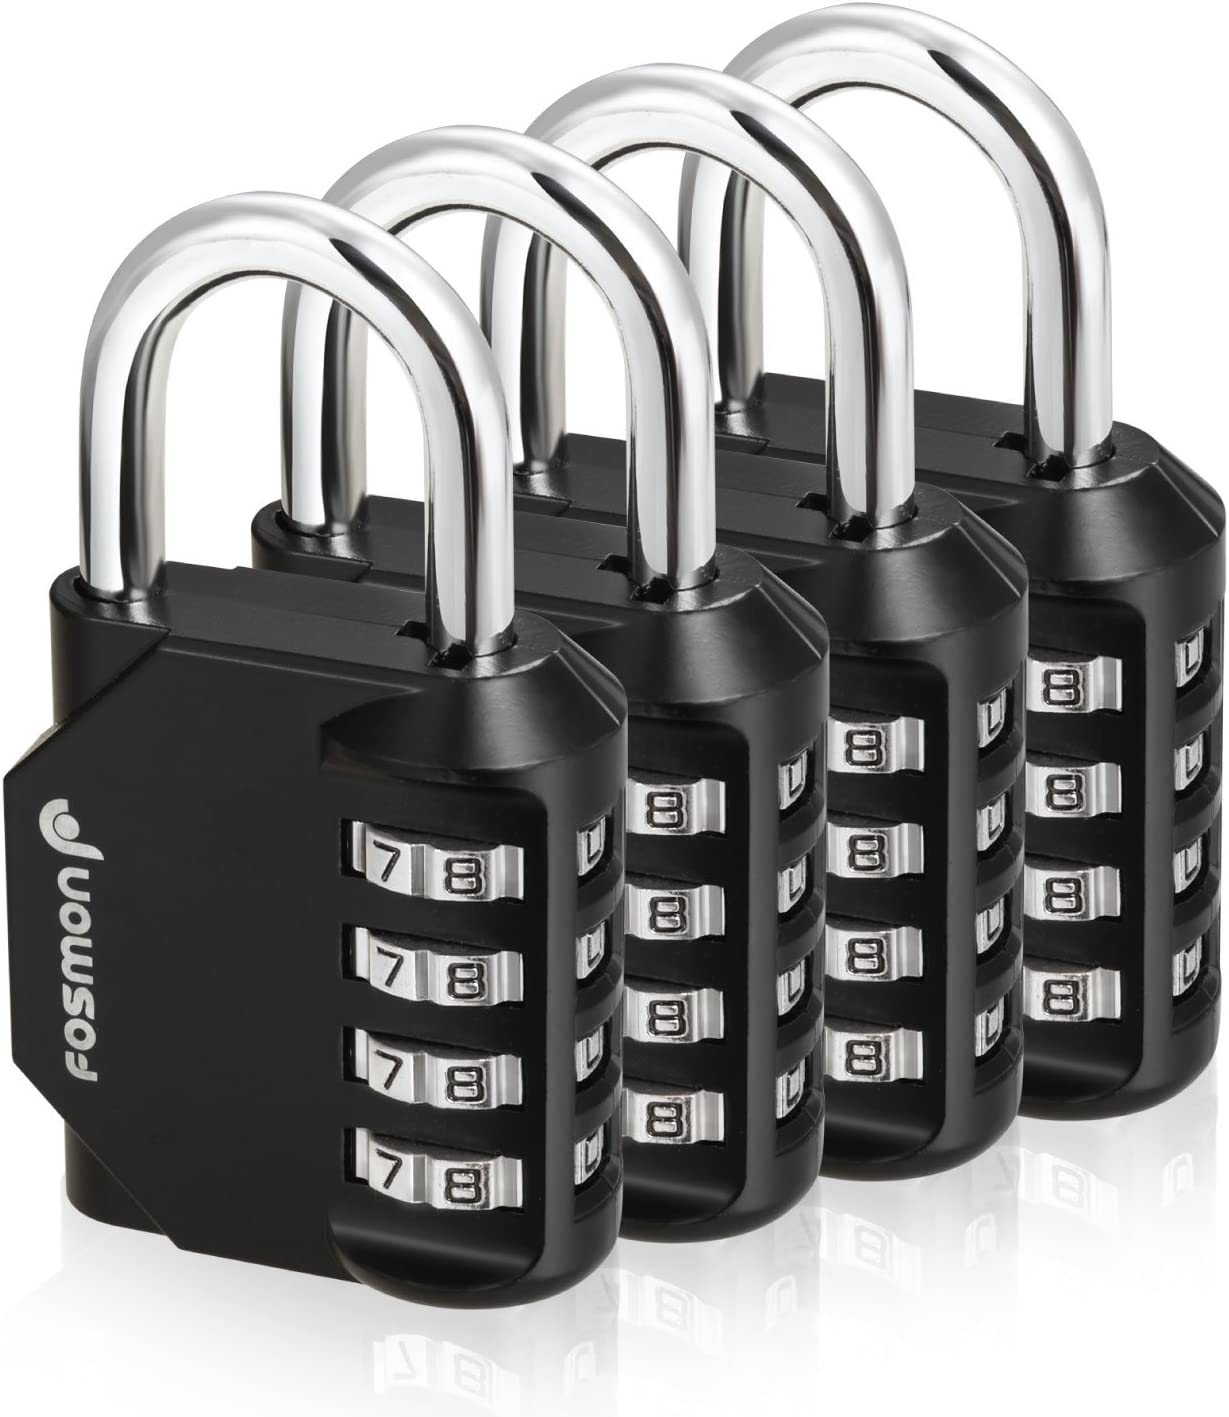 Fosmon Combination Lock, (4 Pack) 4 Digit Multi-Purpose Combination Padlock, Durable (Alloy Body) for Gym, School, Work Locker, Storage Units, Fence, and More